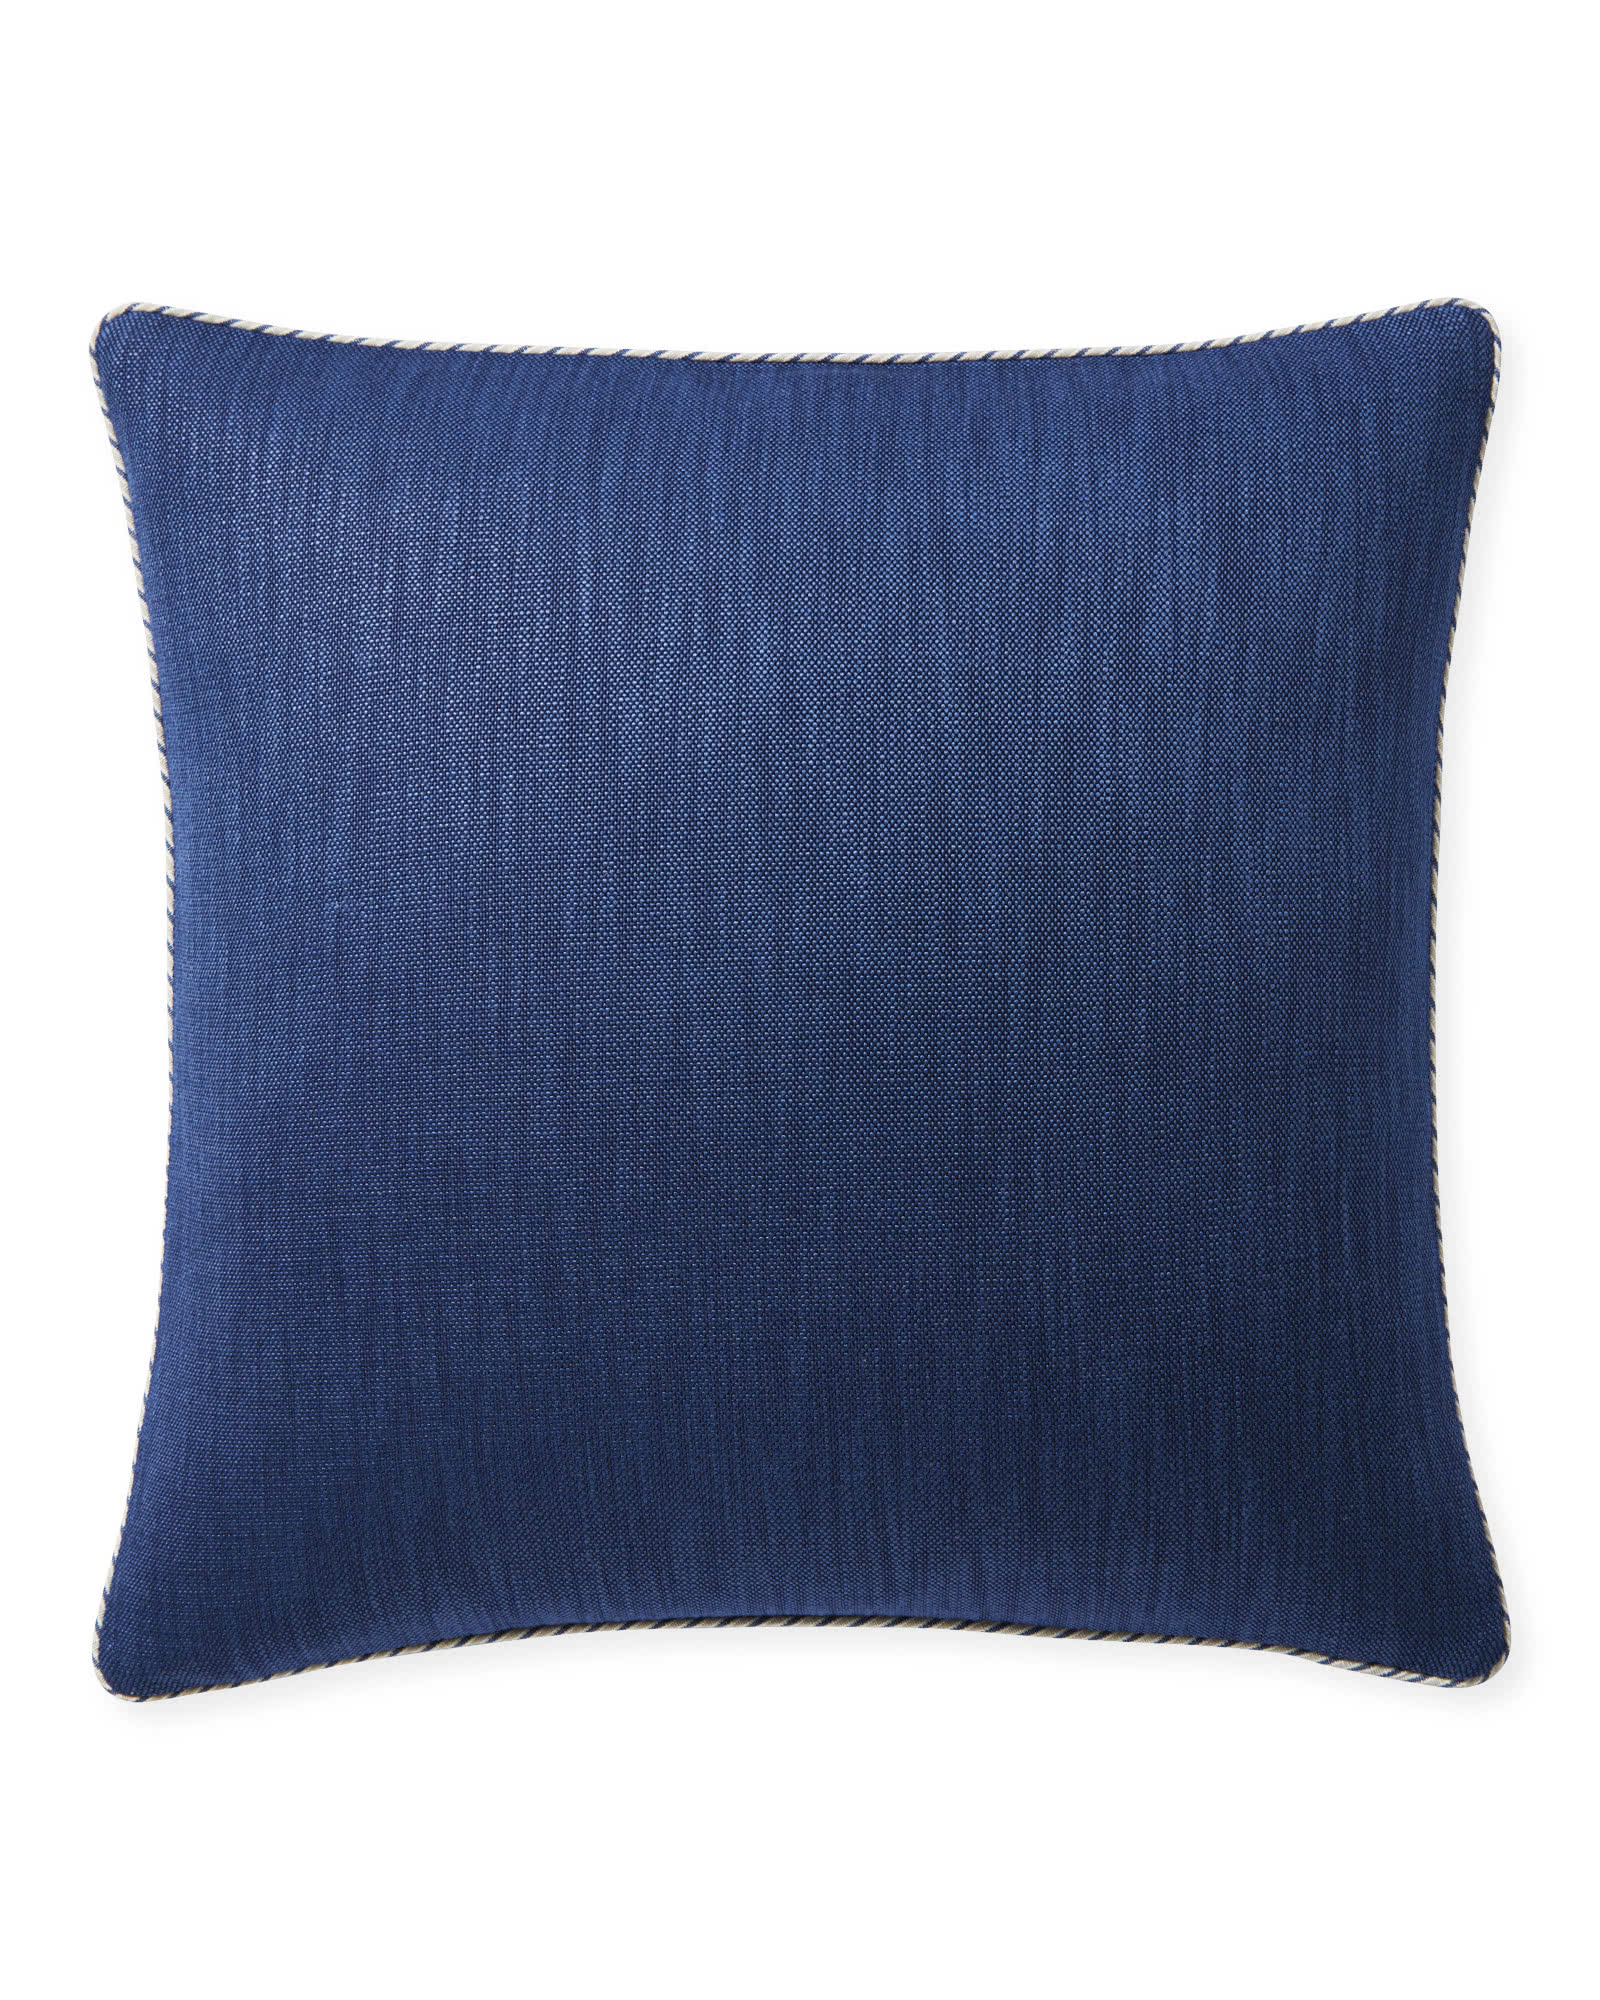 Perennials® Basketweave Outdoor Pillow Cover, Navy